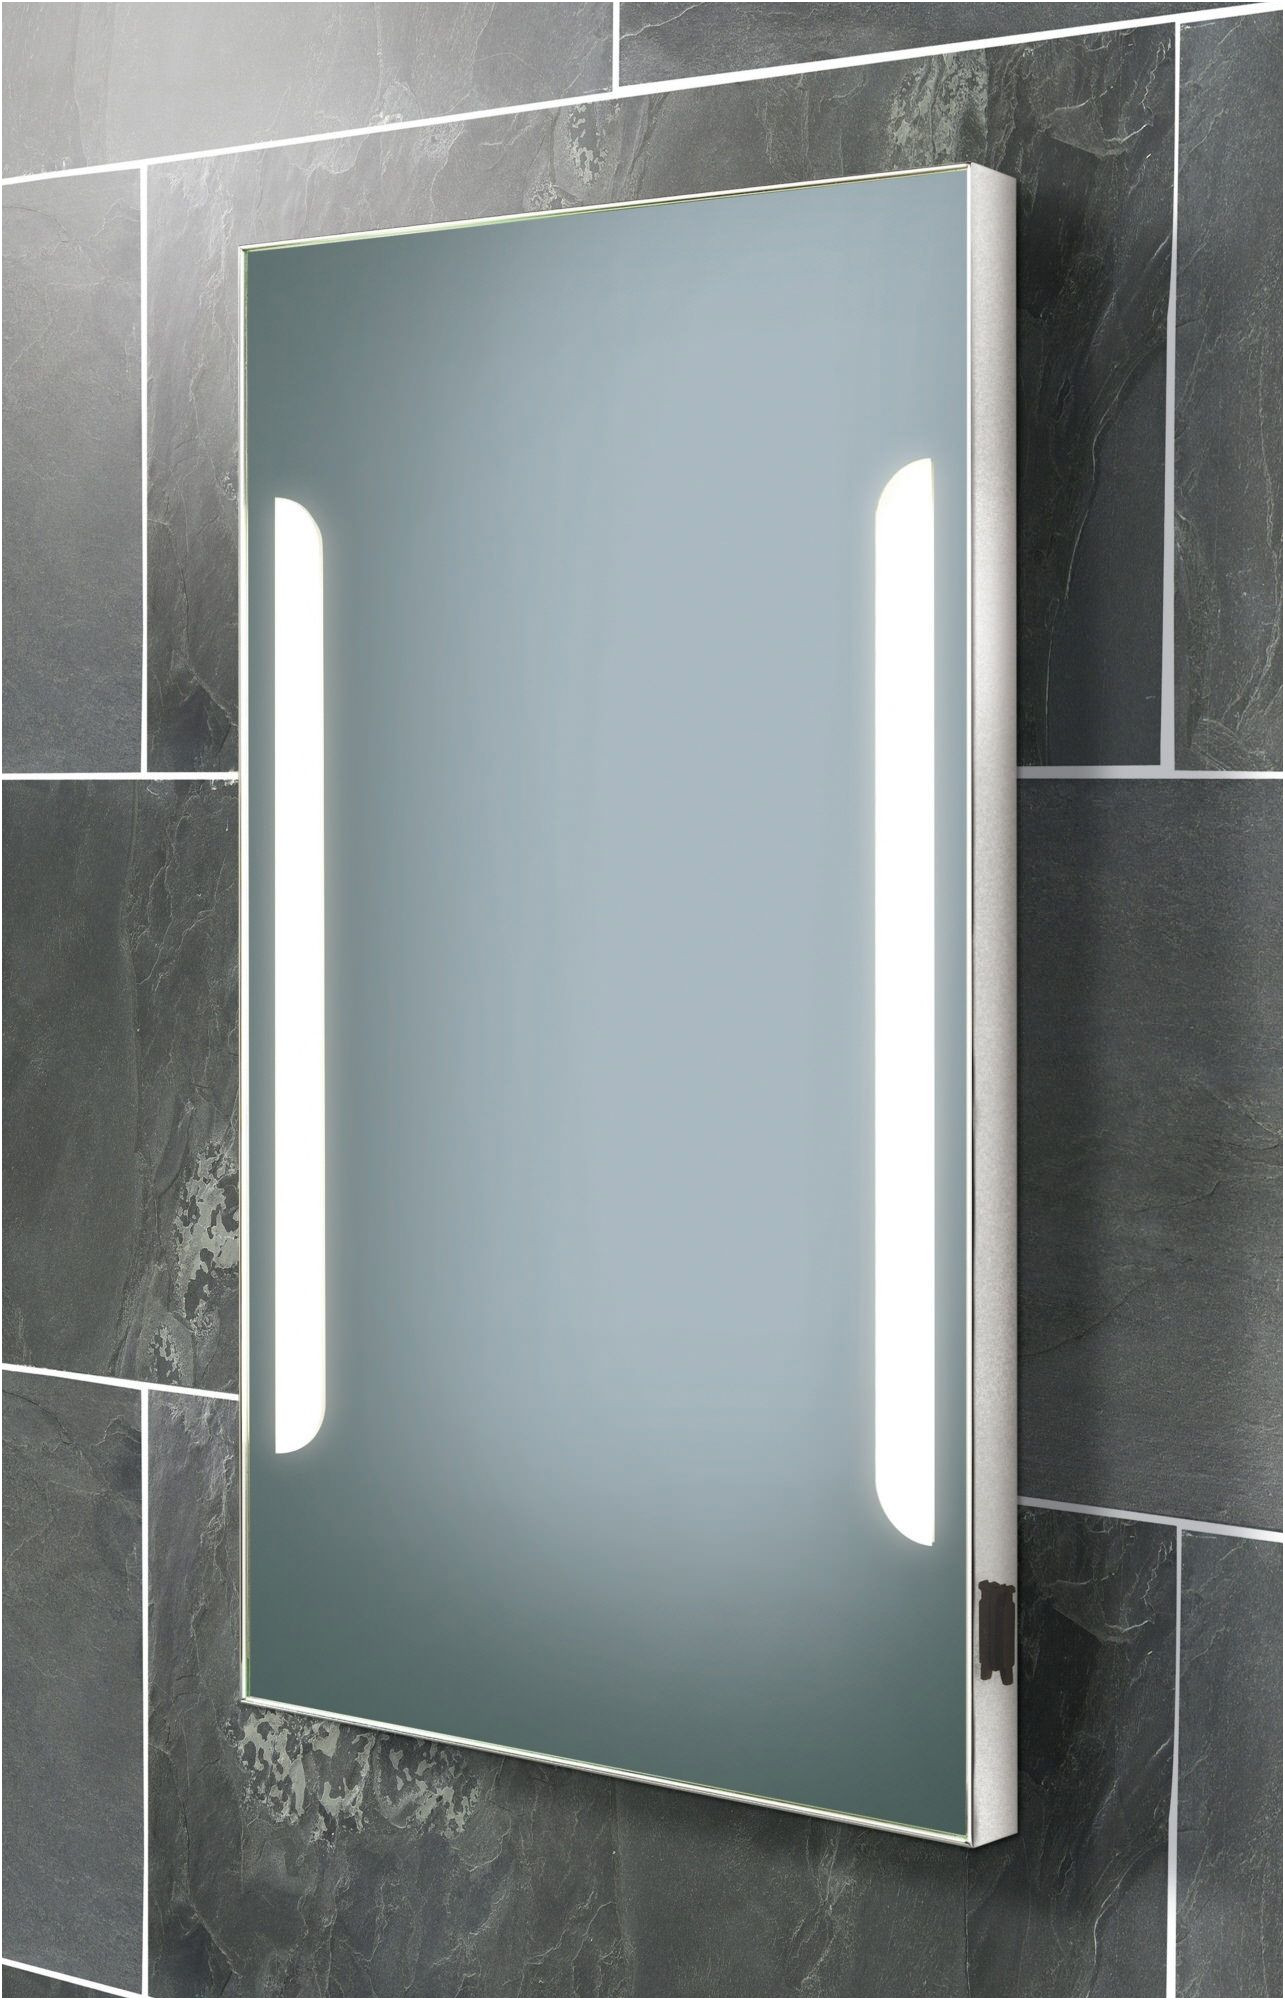 New Bathroom Mirrors with Shaver sockets